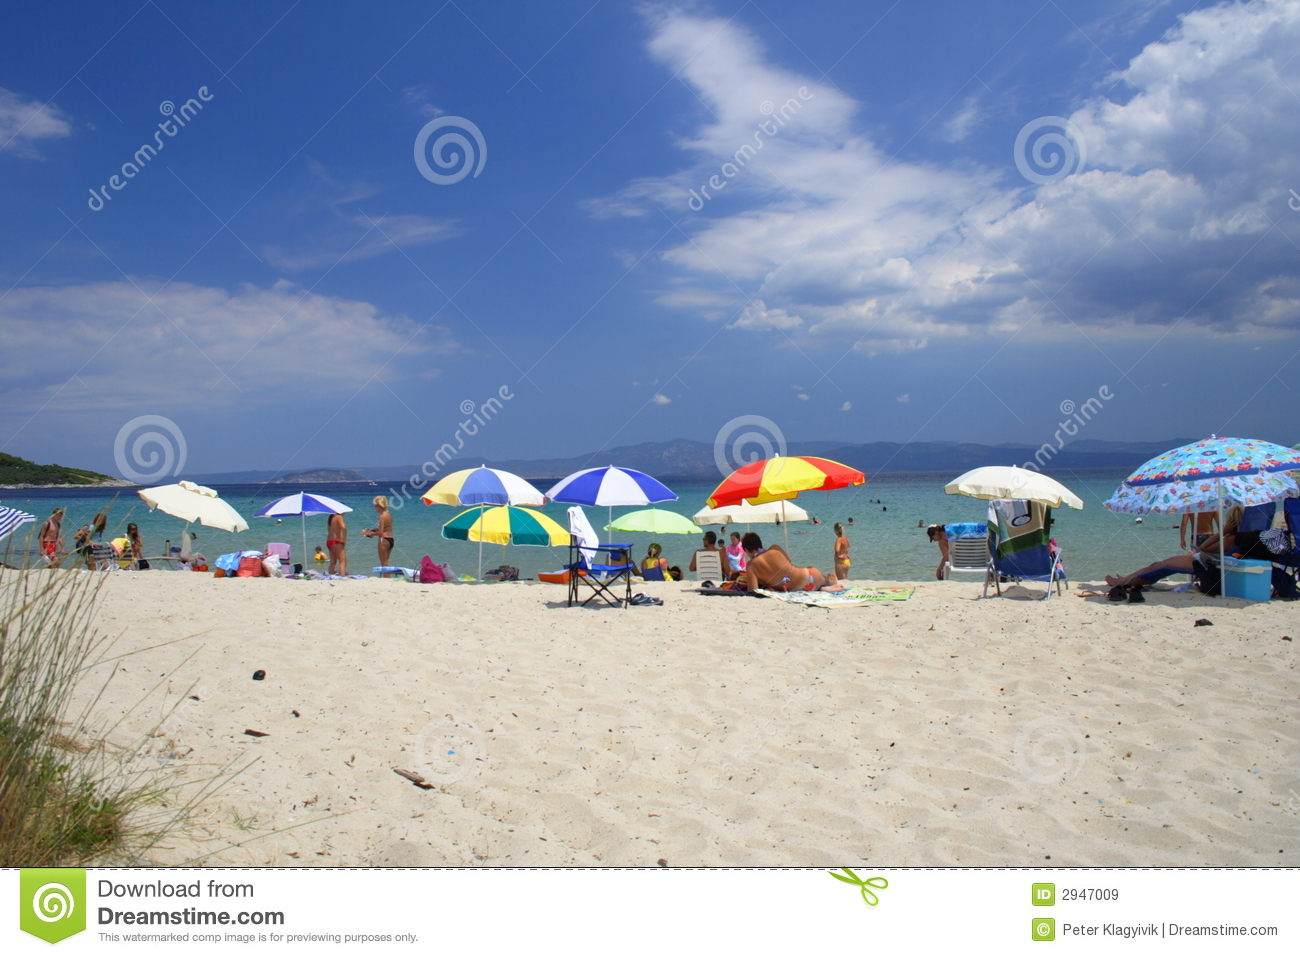 Beach With Colorful Umbrellas Royalty Free Stock Images ... - photo#41